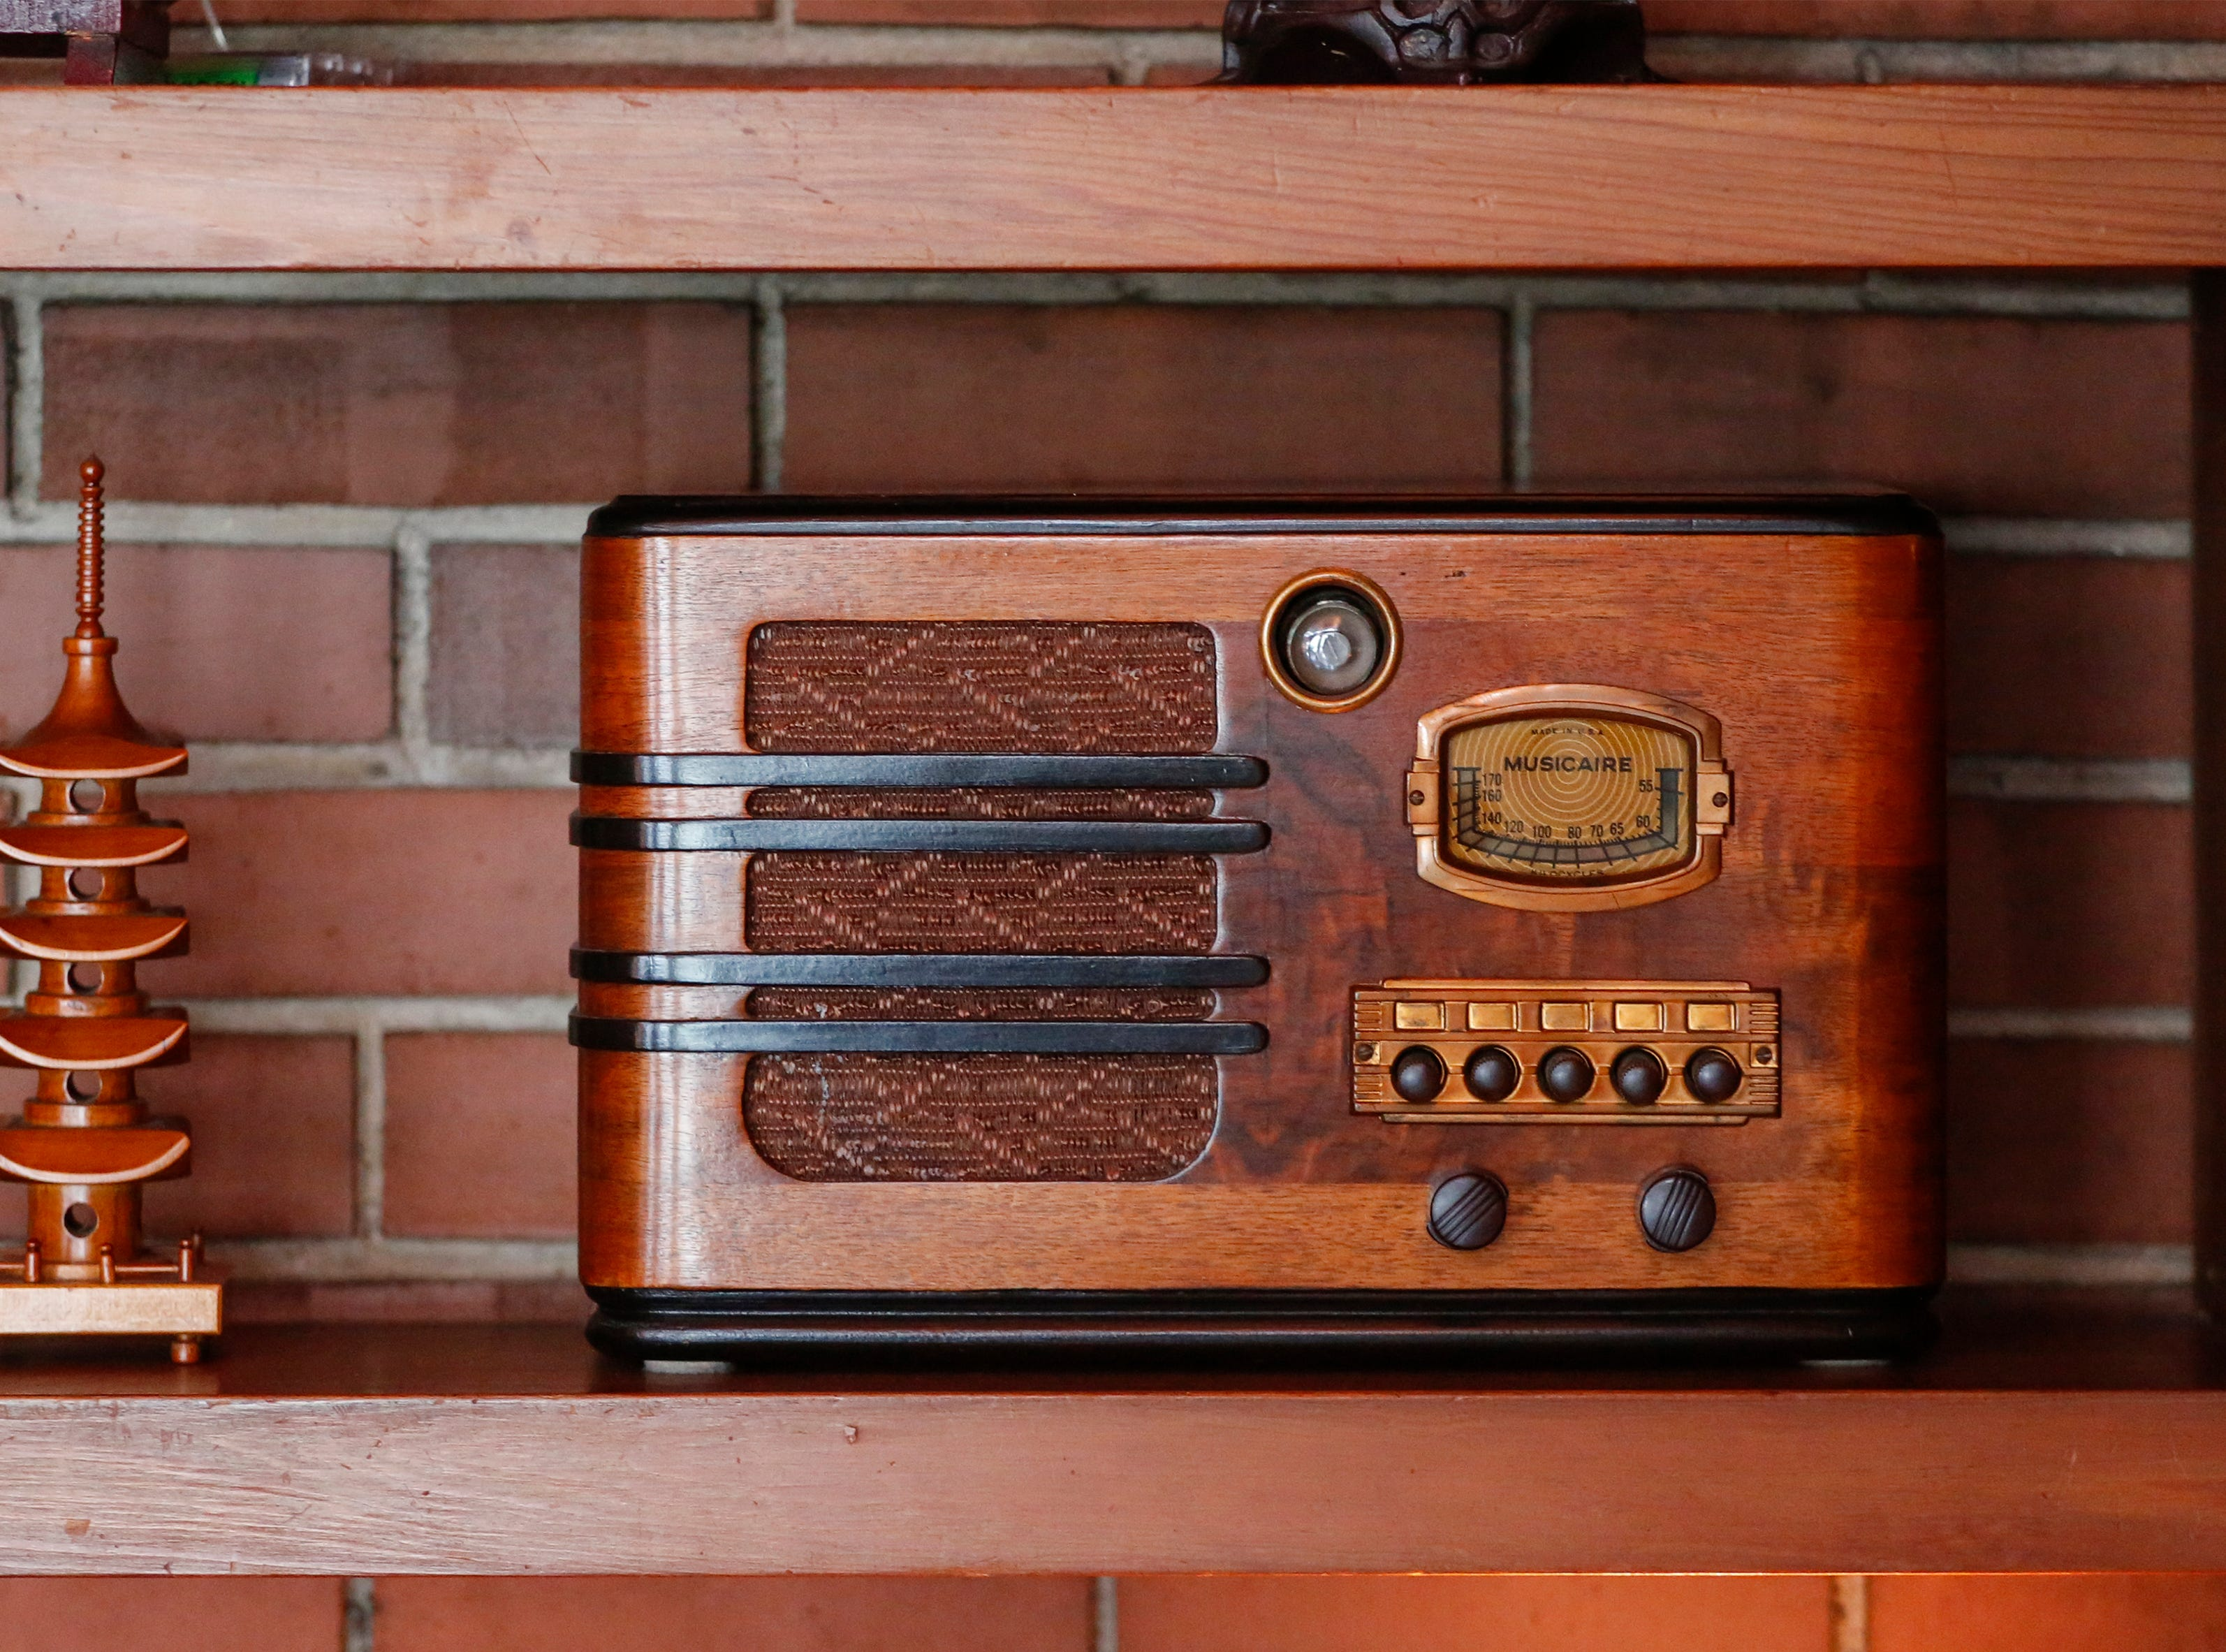 An old radio on a shelf at Still Bend on Nov. 29, 2018, in Two Rivers, Wis.